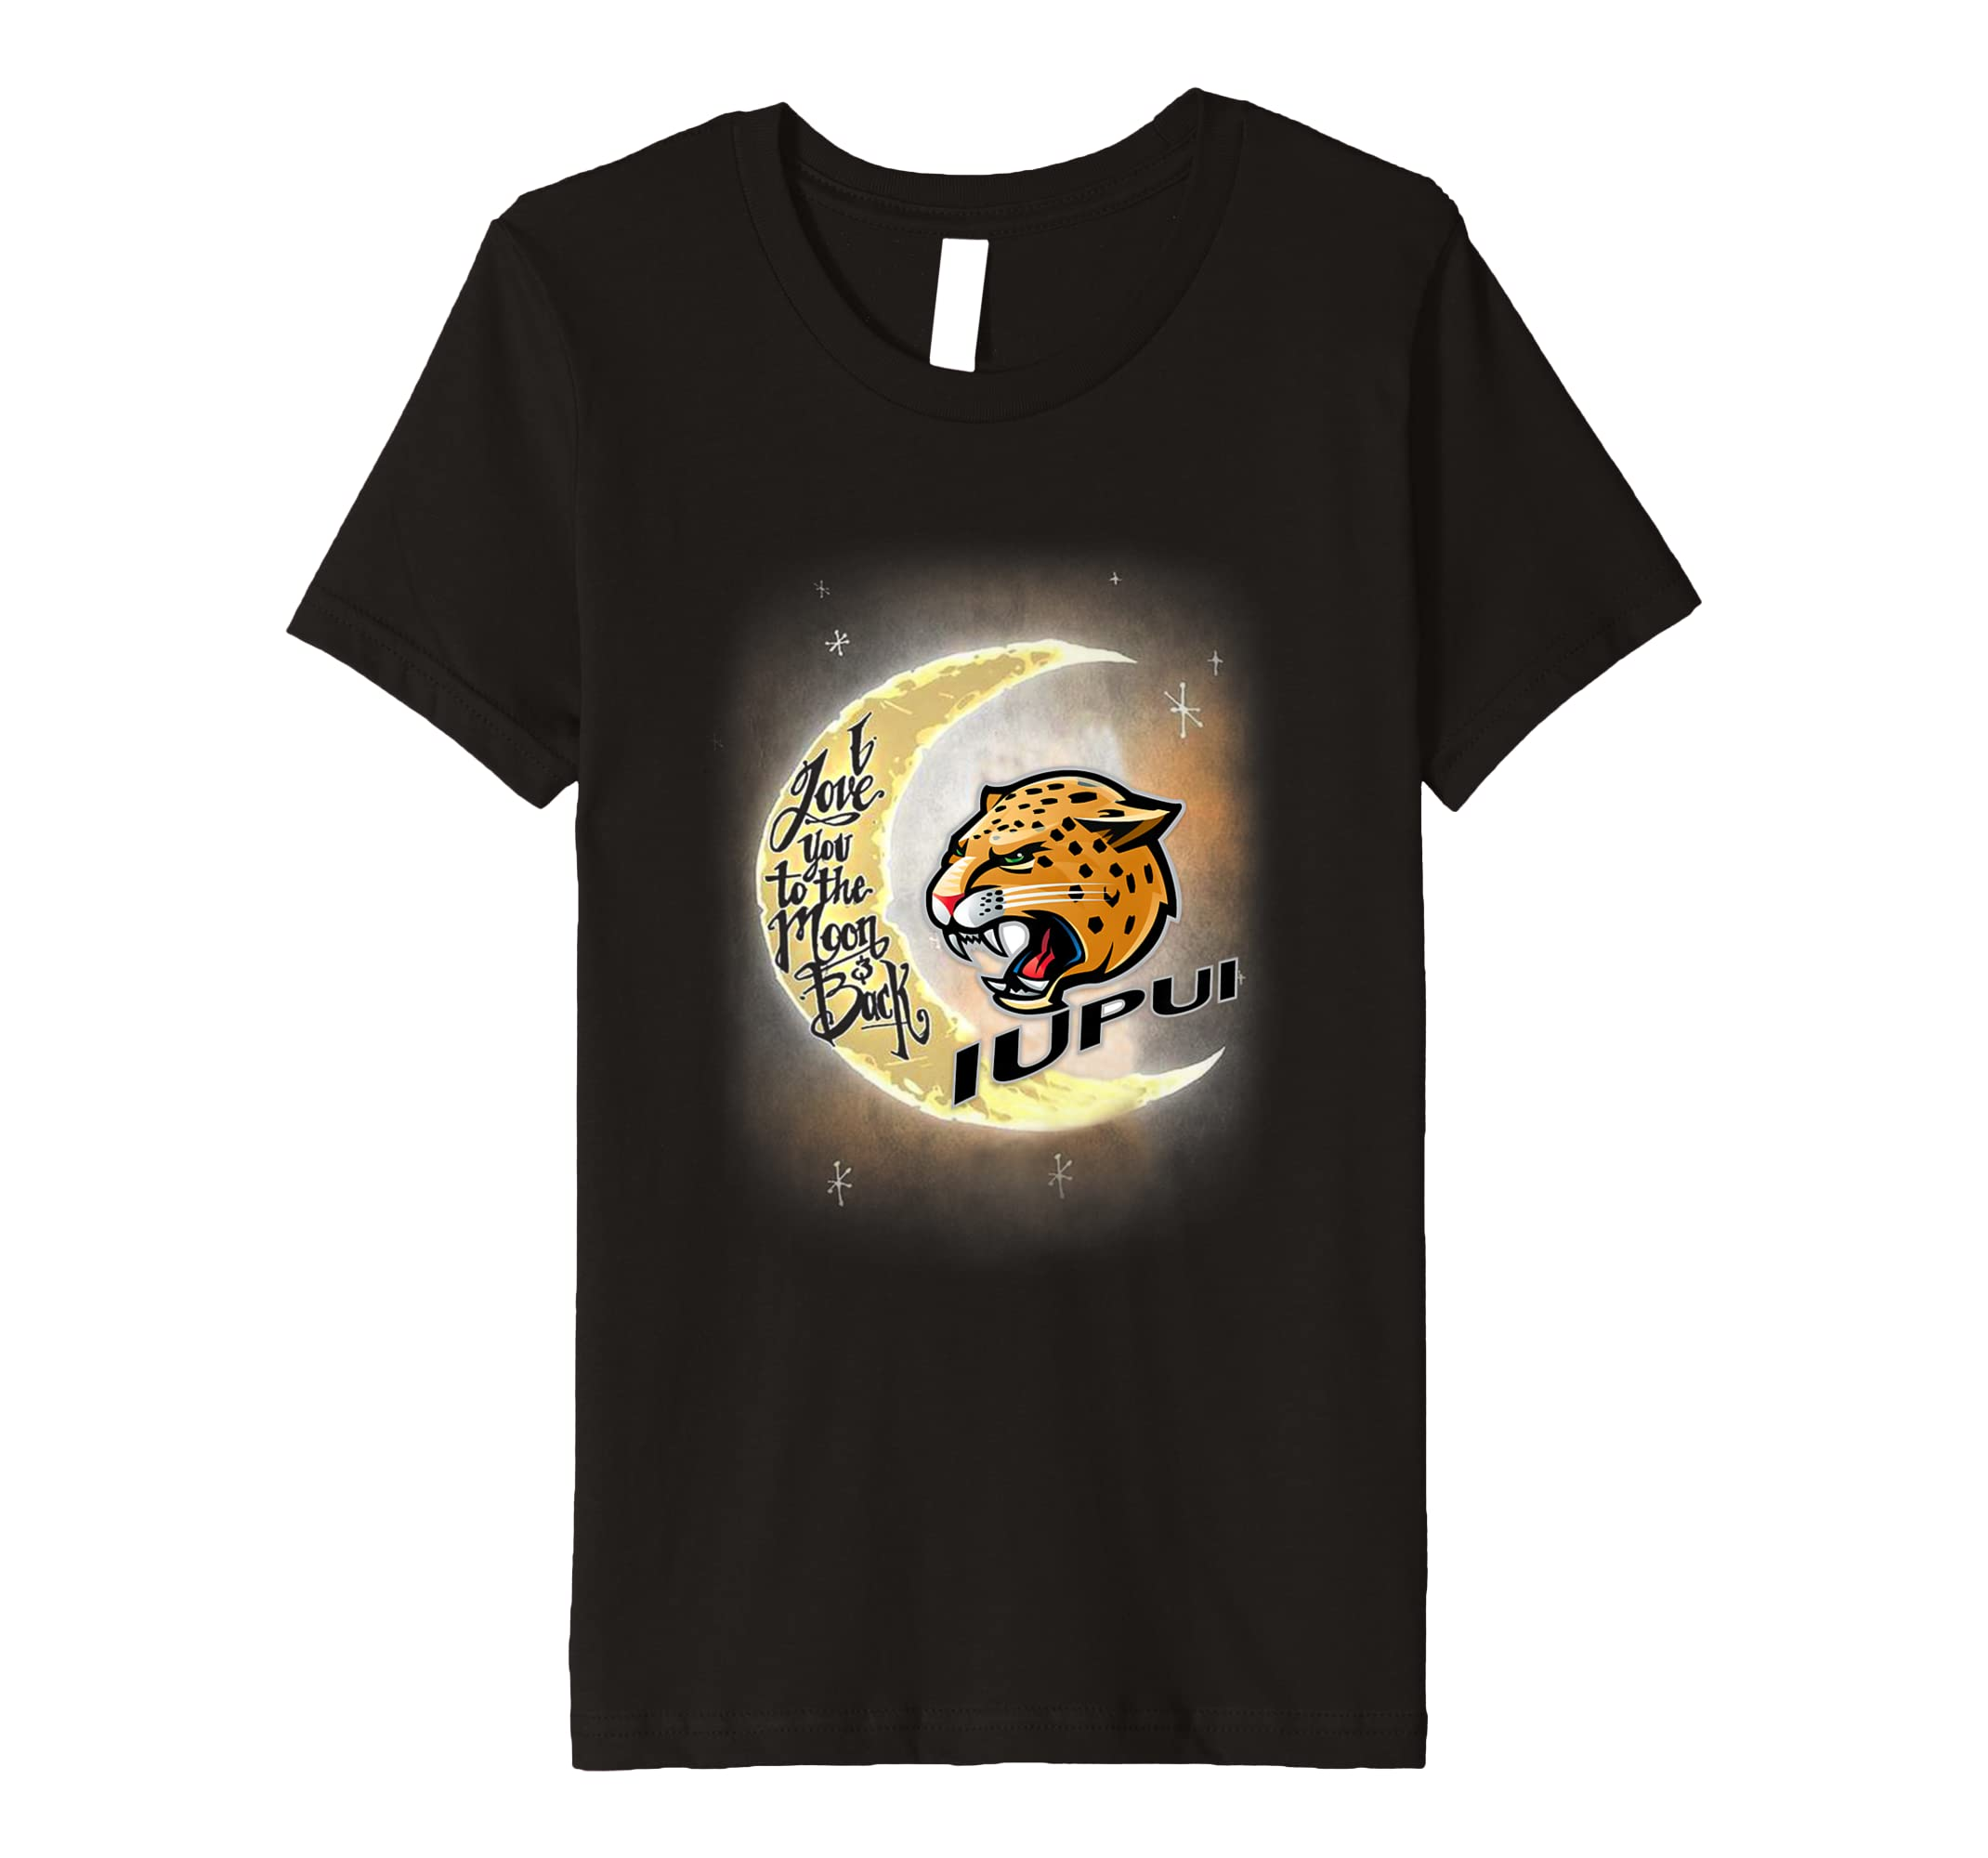 finest selection 99518 7bb9d Amazon.com: IUPUI Jaguars Limited Edition! T-Shirt: Clothing